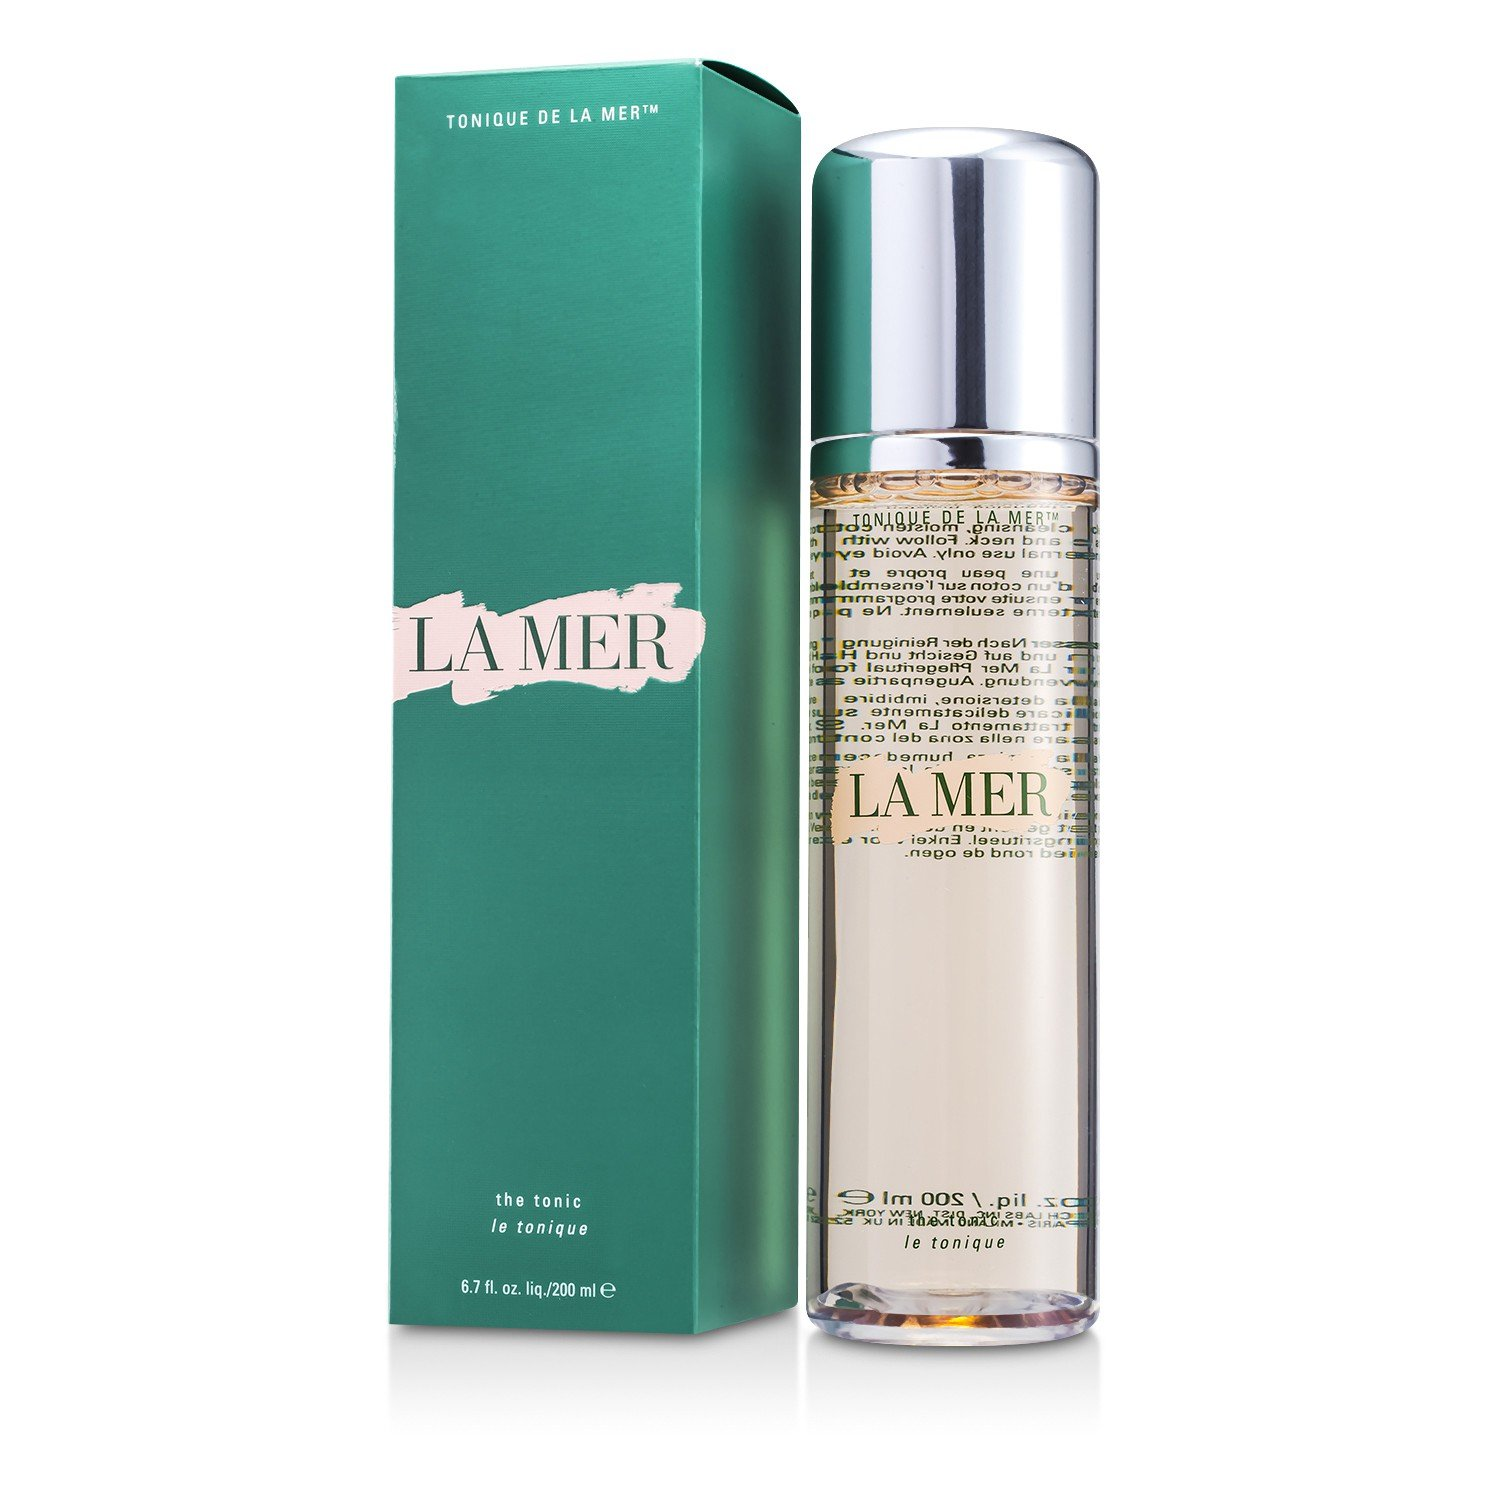 B00075QF1Q Skincare-La Mer - Cleanser-The Tonic-200ml/6.7oz 714t8C2FfeL._SL1500_